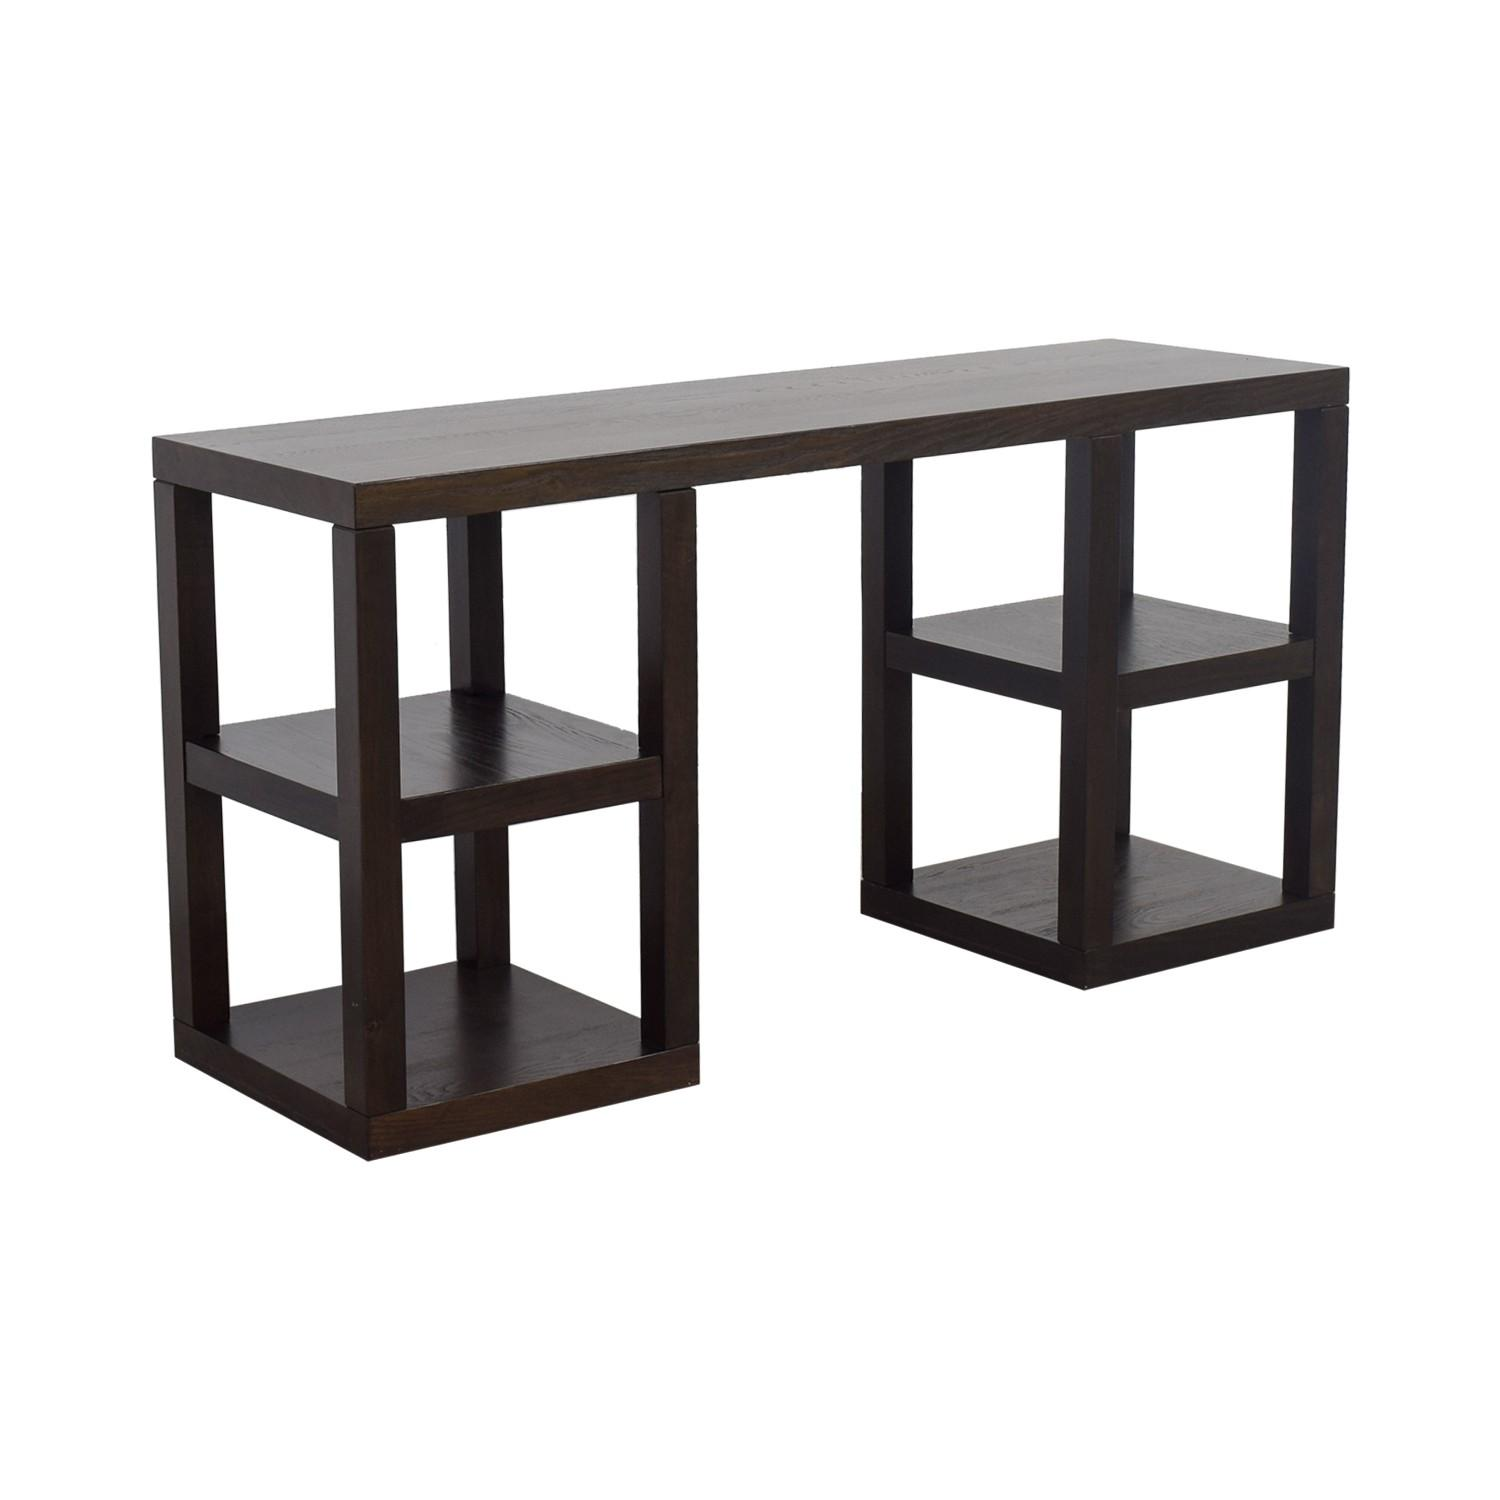 West Elm 2 X 2 Console Desk in Chocolate - image-3